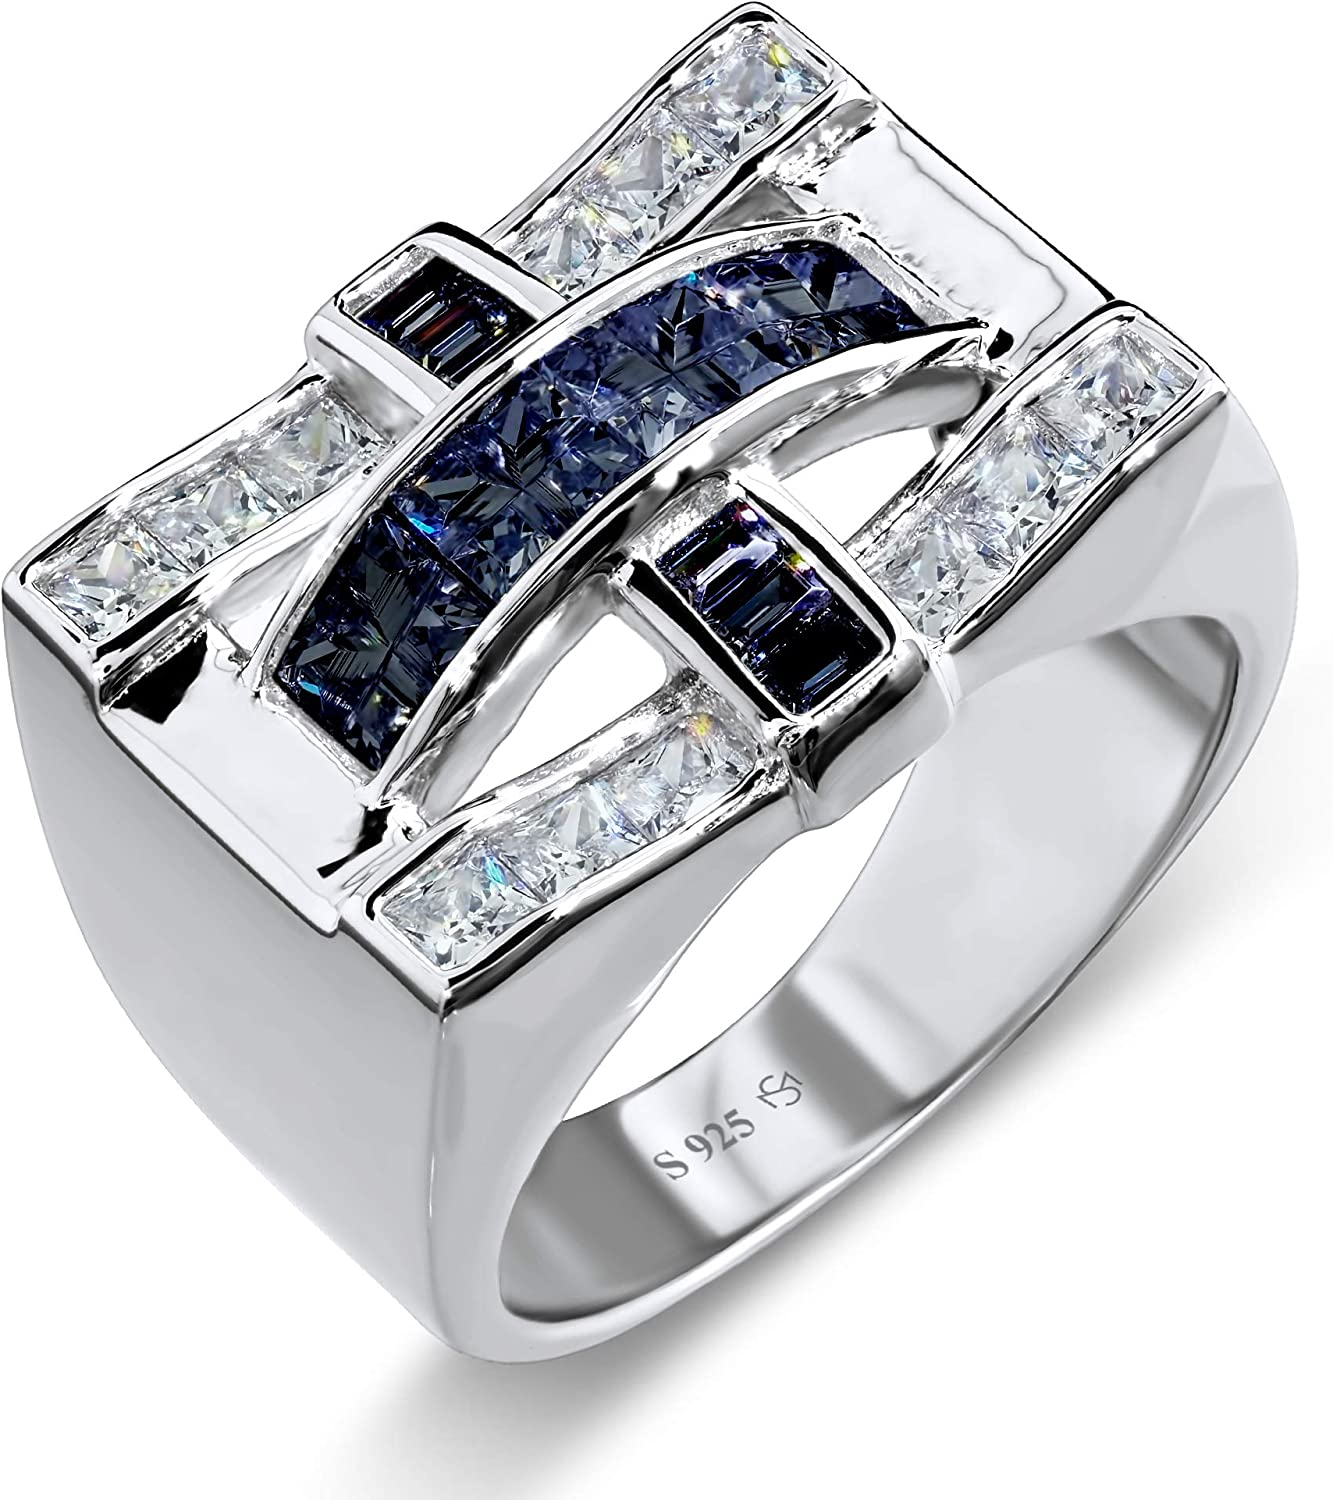 [2-5 Days Delivery] Men's Elegant Sterling Silver .925 Criss Cross Ring with Fancy White and Dark Blue Cubic Zirconia (CZ) Channel and Invisible Set Stones, Platinum Plated. By Sterling Manufacturers. Iced.